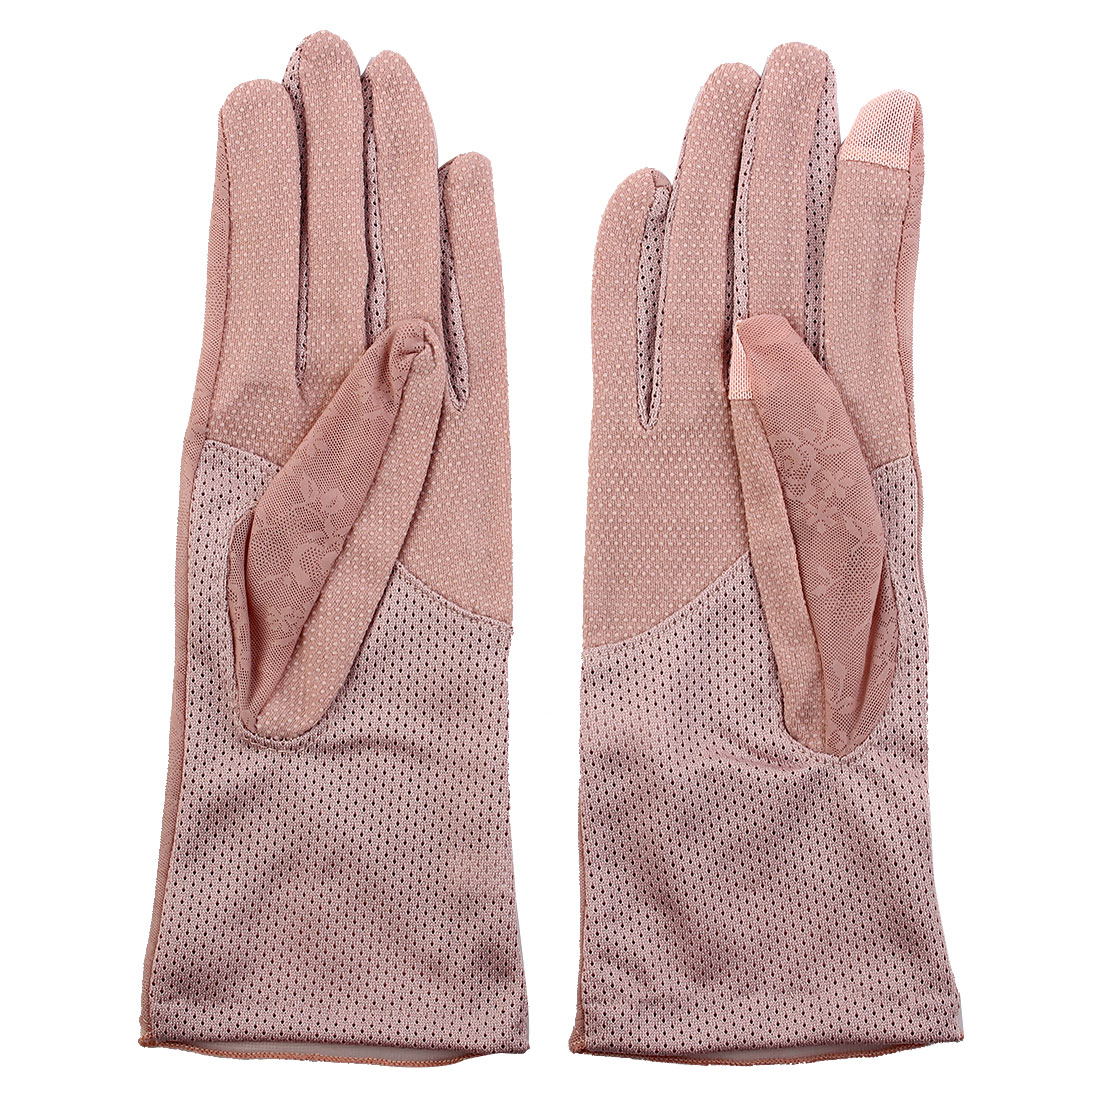 Outdoor Travel Cycling Driving Flower Decor Sun Resistant Gloves Pink Pair by